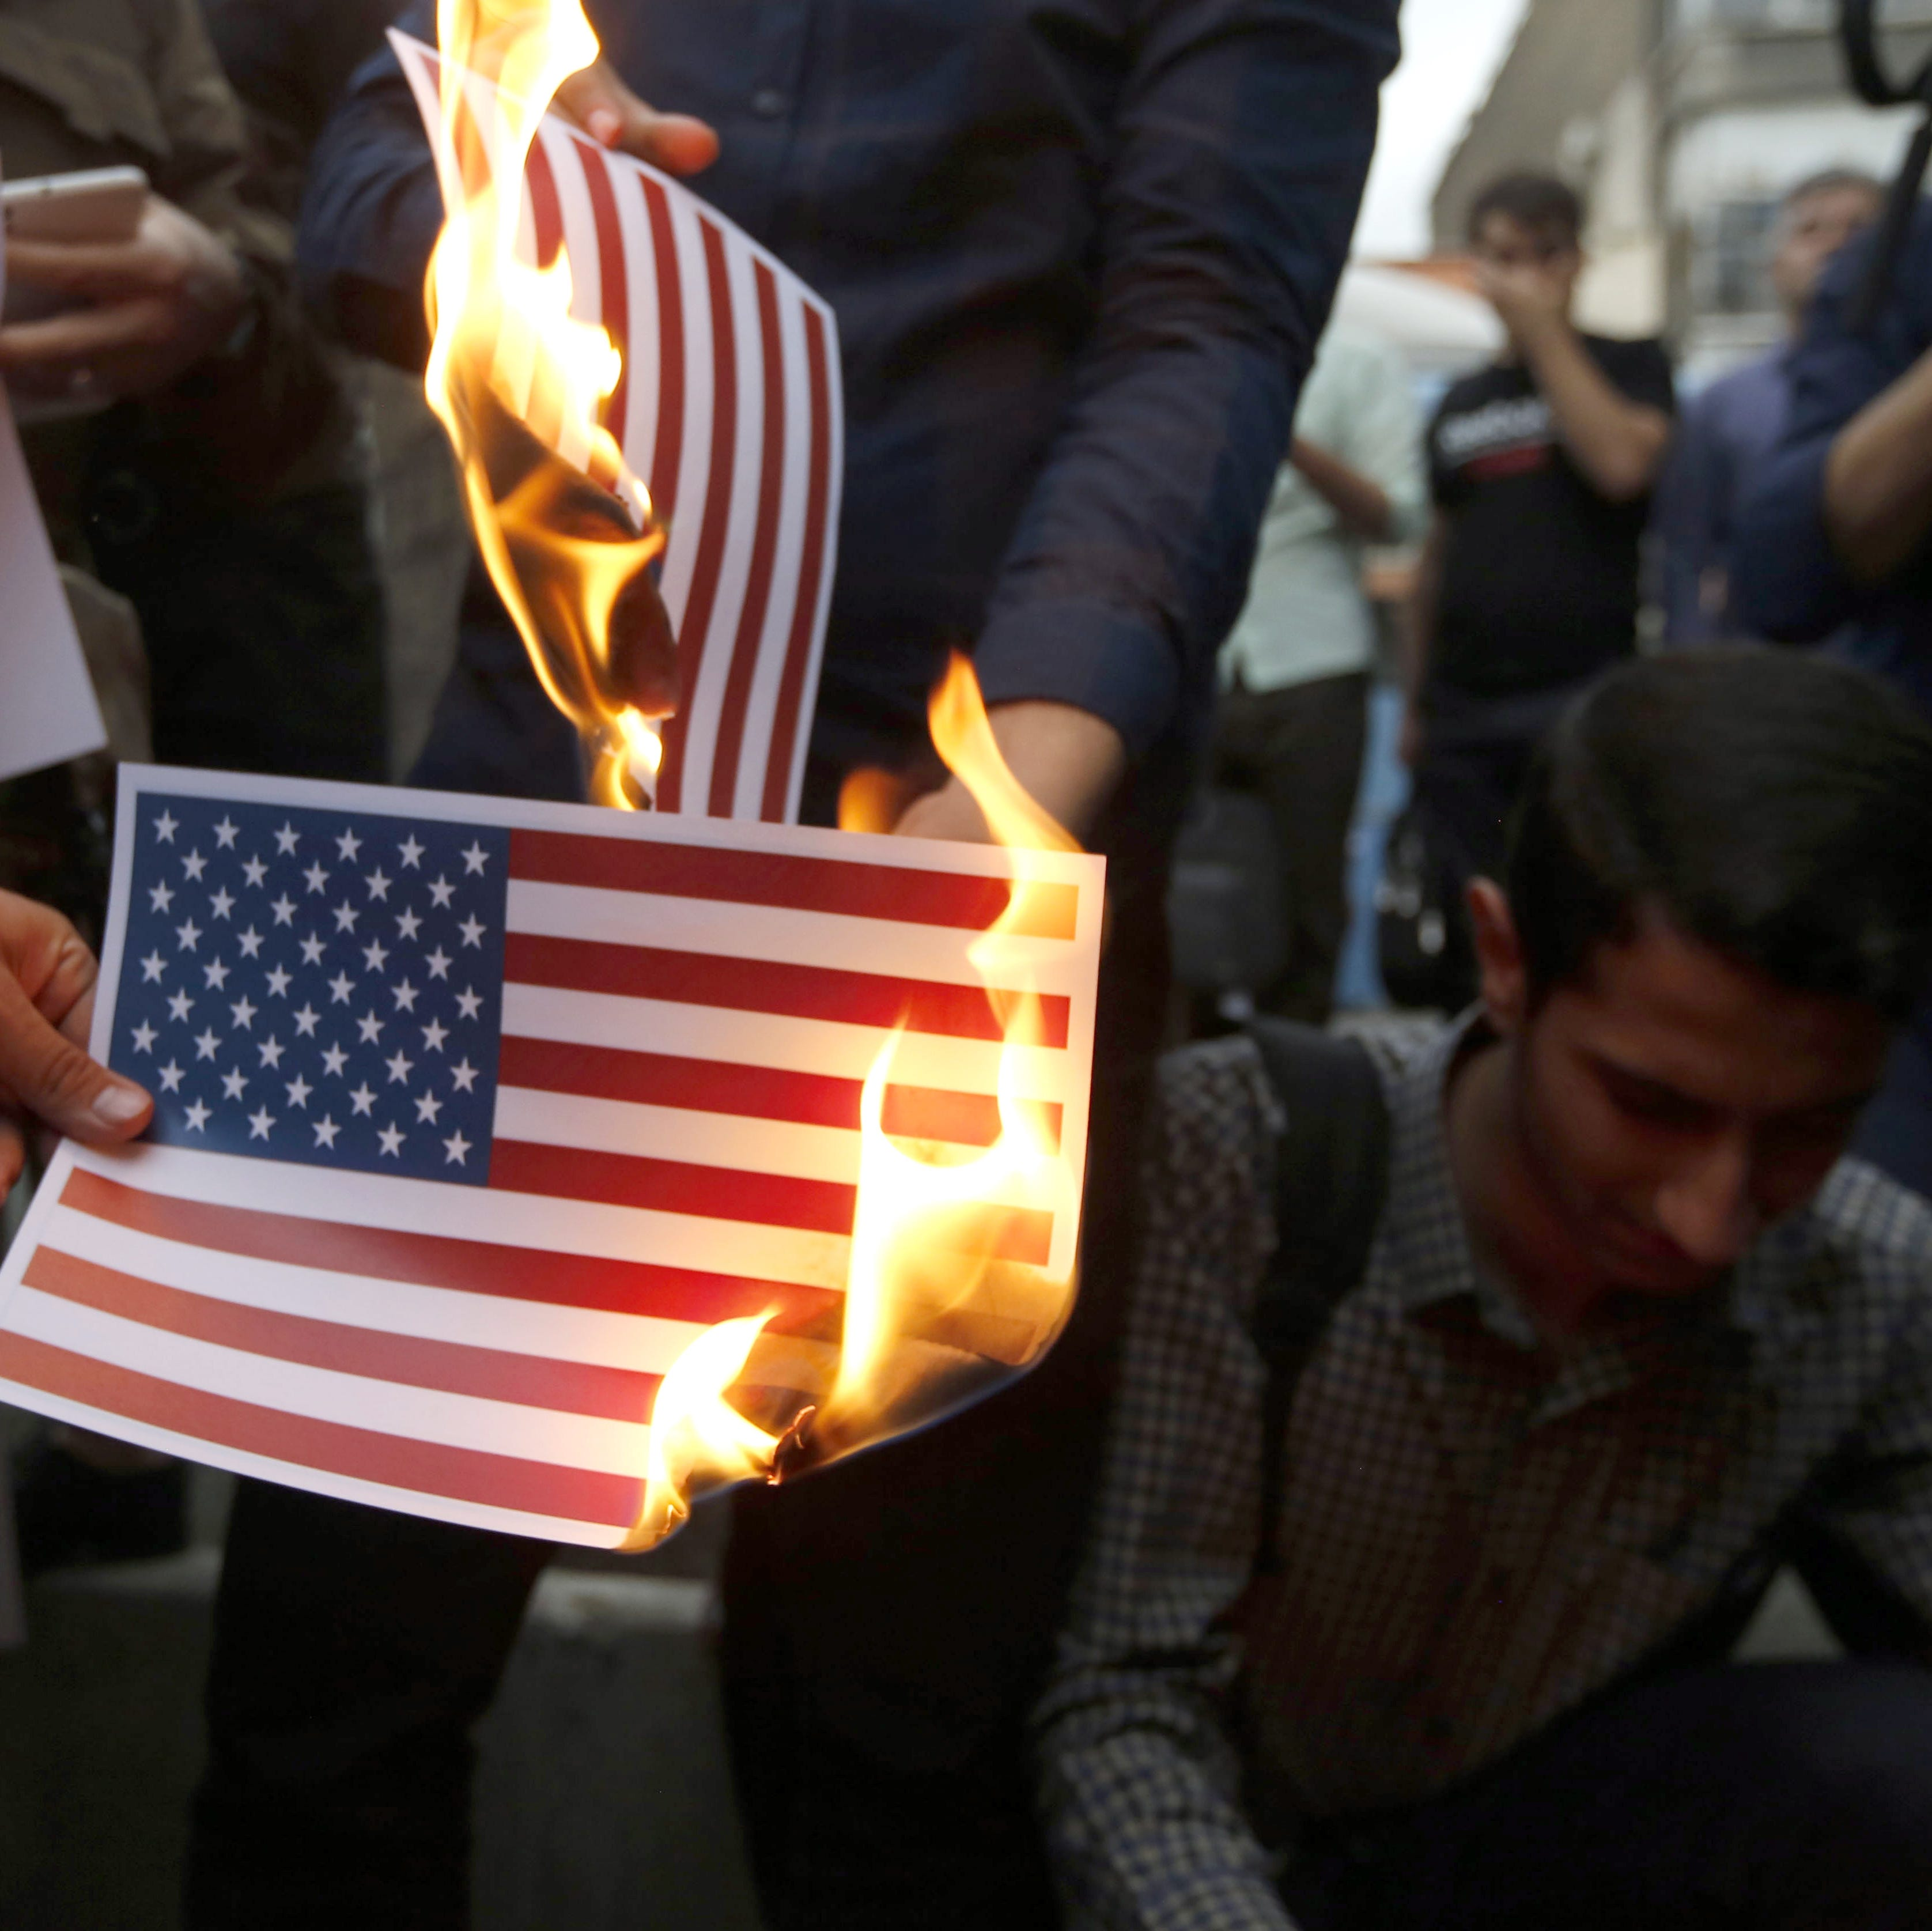 2020 presidential race: Top Democrats support Iran's hopes instead of promising sanctions